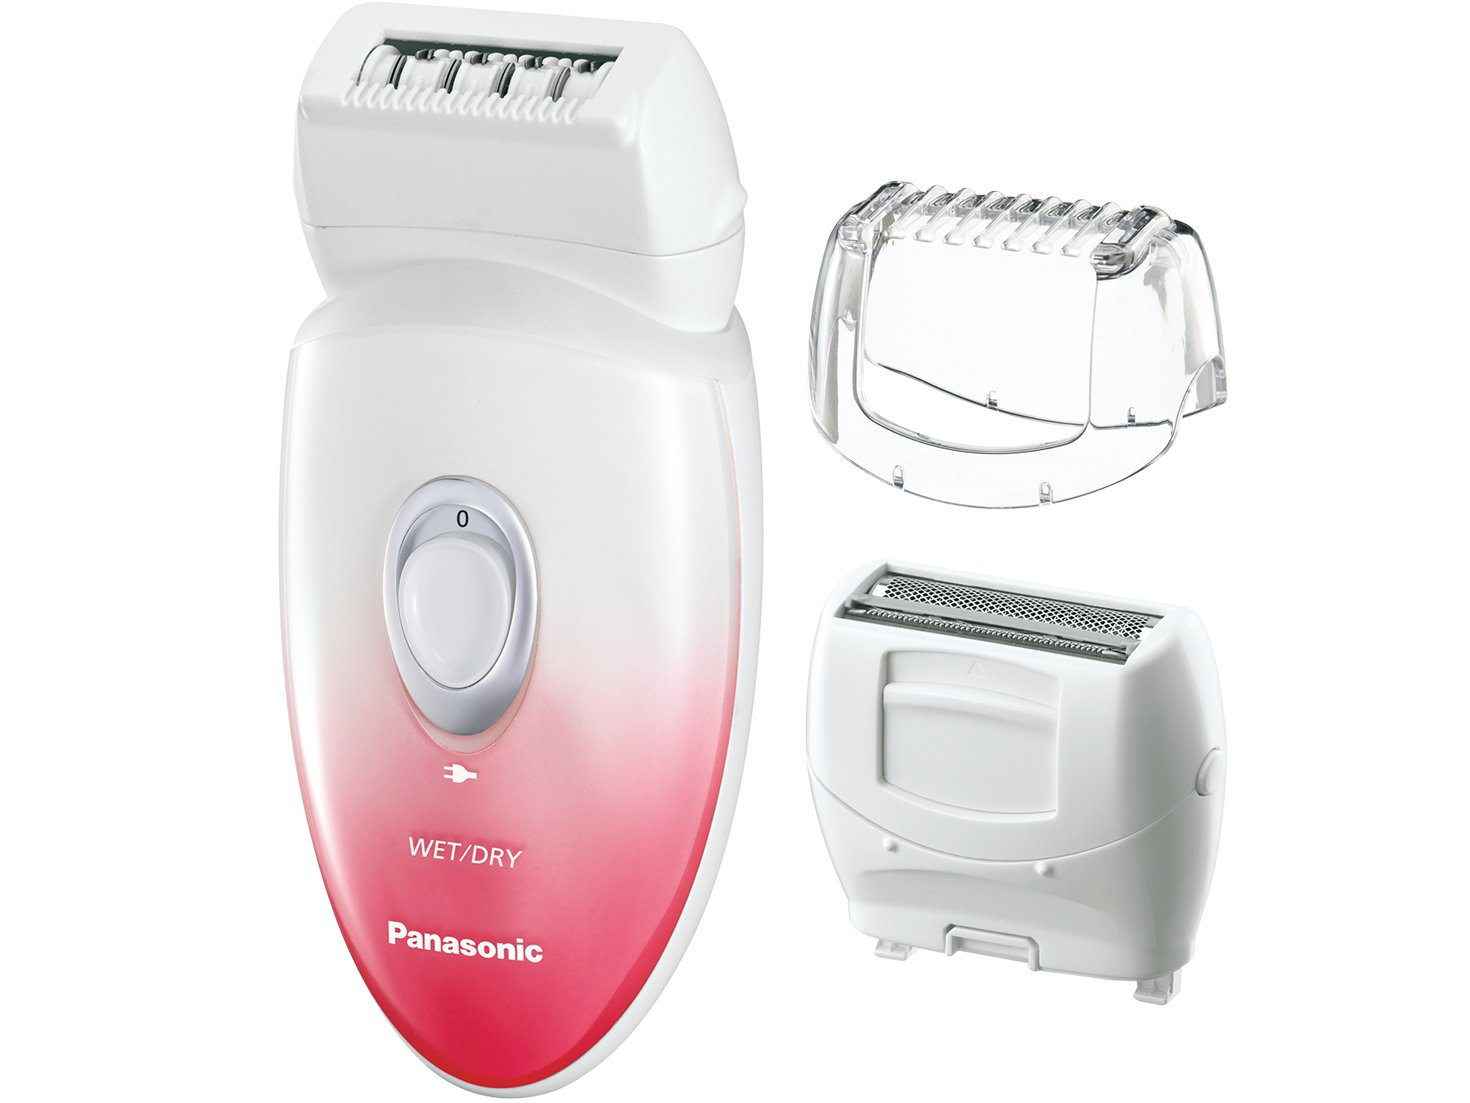 Panasonic ES-EU20-P Multi-Functional Wet/Dry Shaver and Epilator with Three Attachments and Travel Pouch